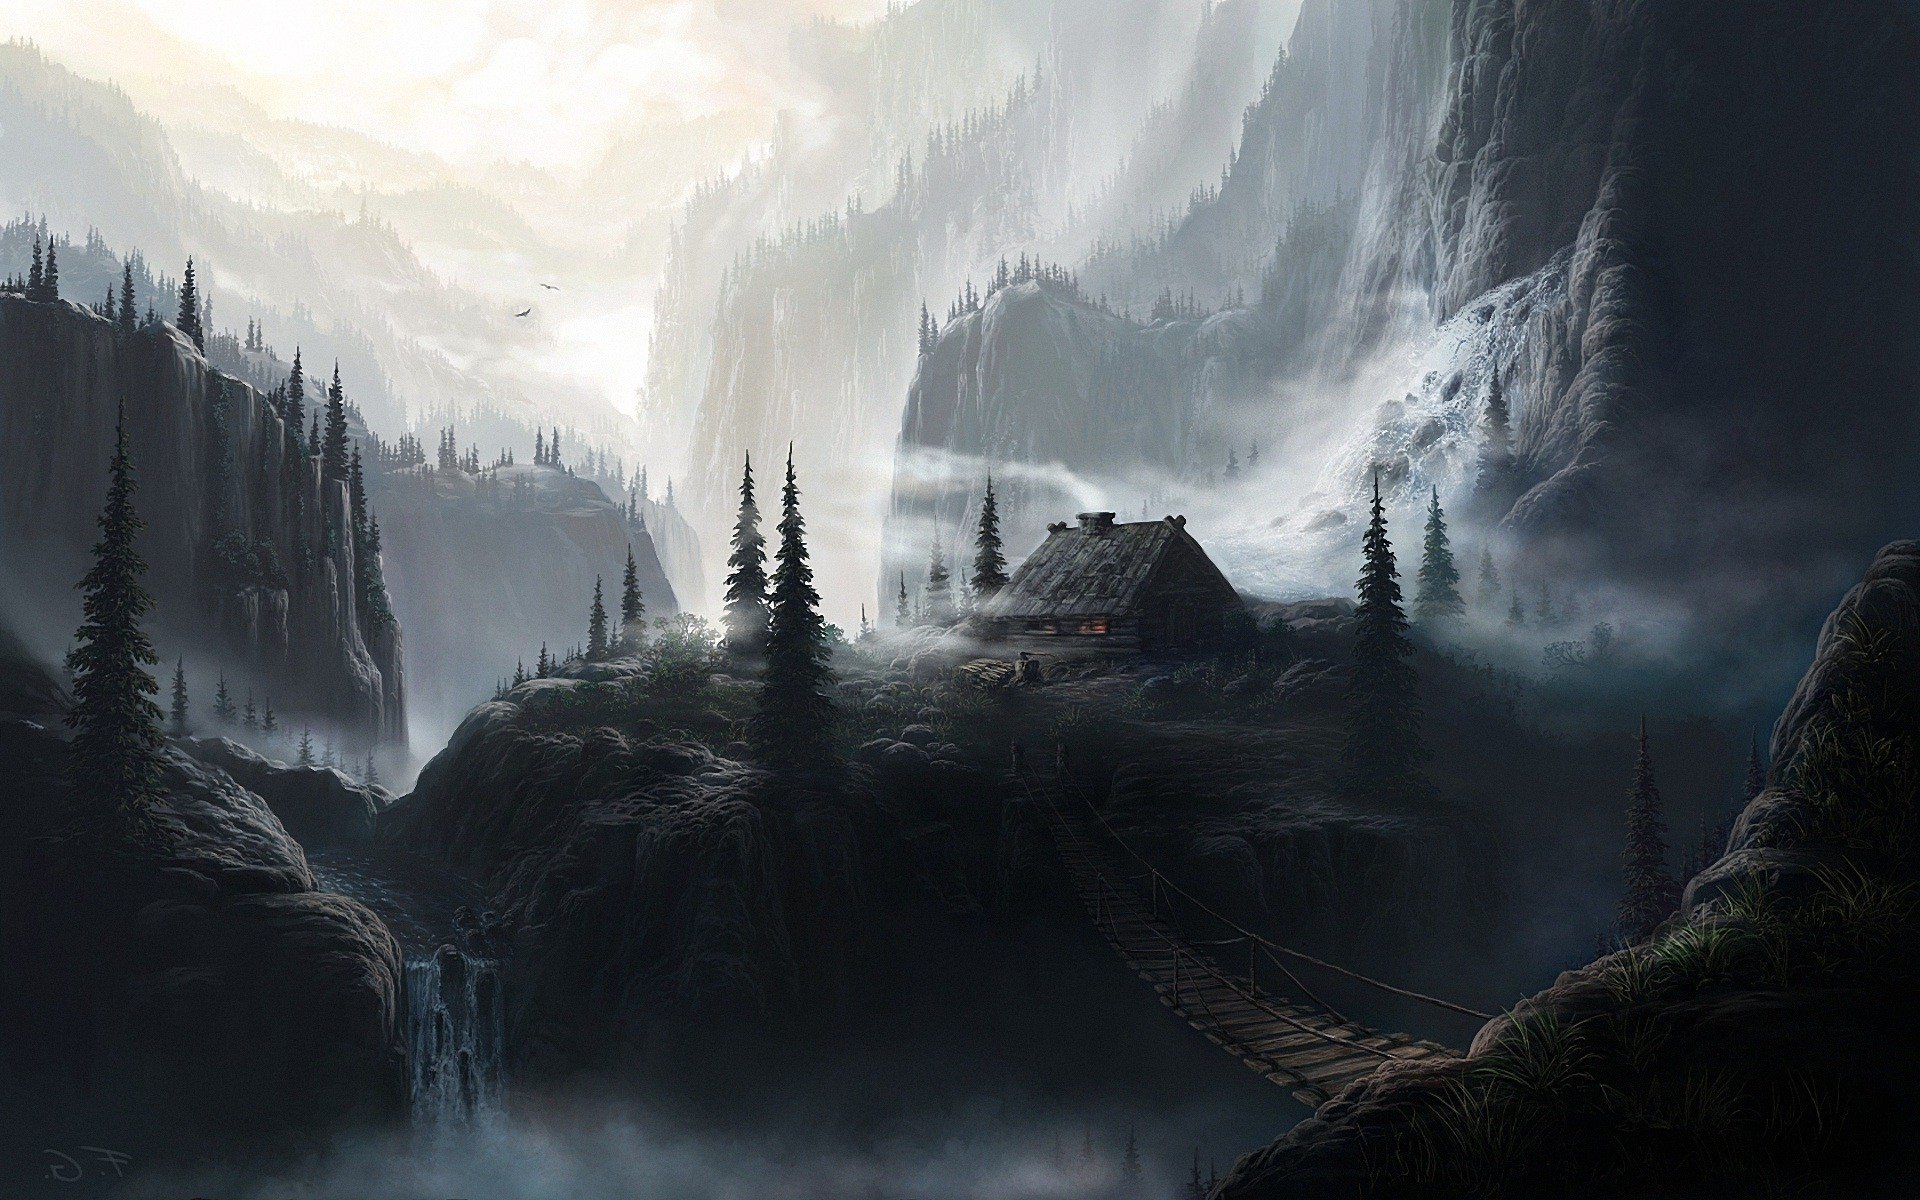 Landscapes Dark Houses Bridges Fantasy Art Artwork Waterfalls